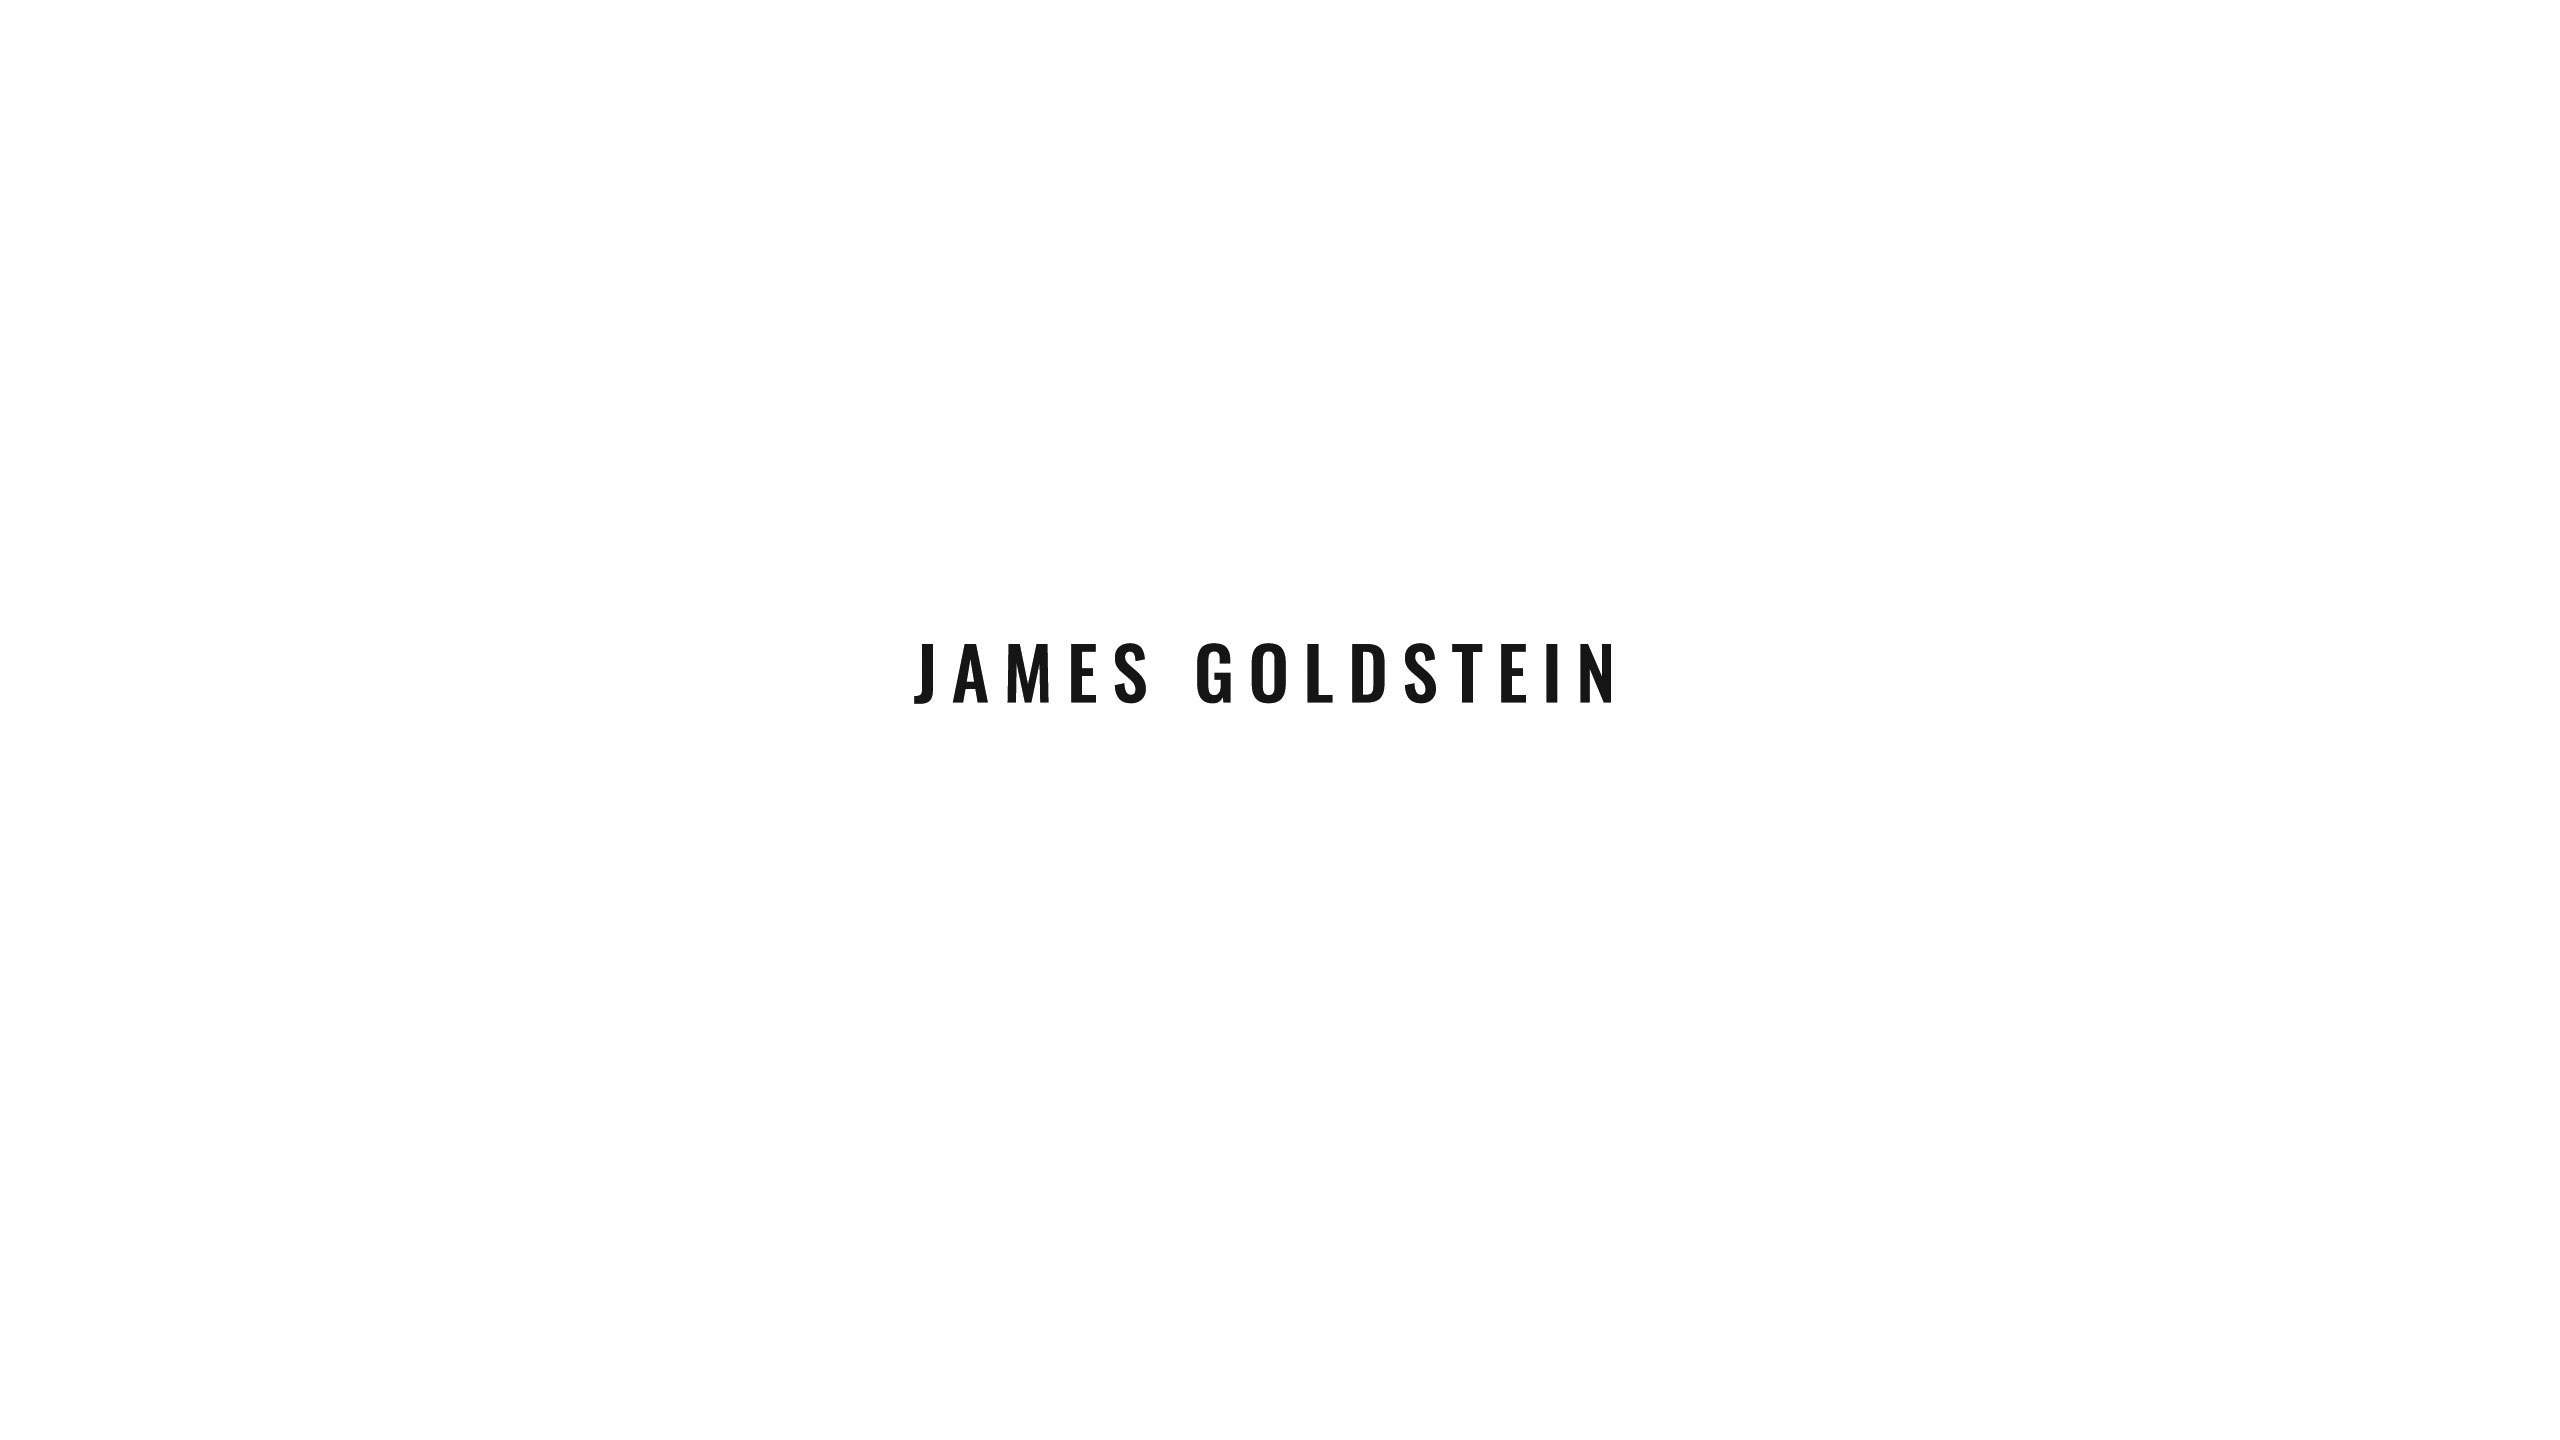 1a_Text_JAMES_GOLDSTEIN-1